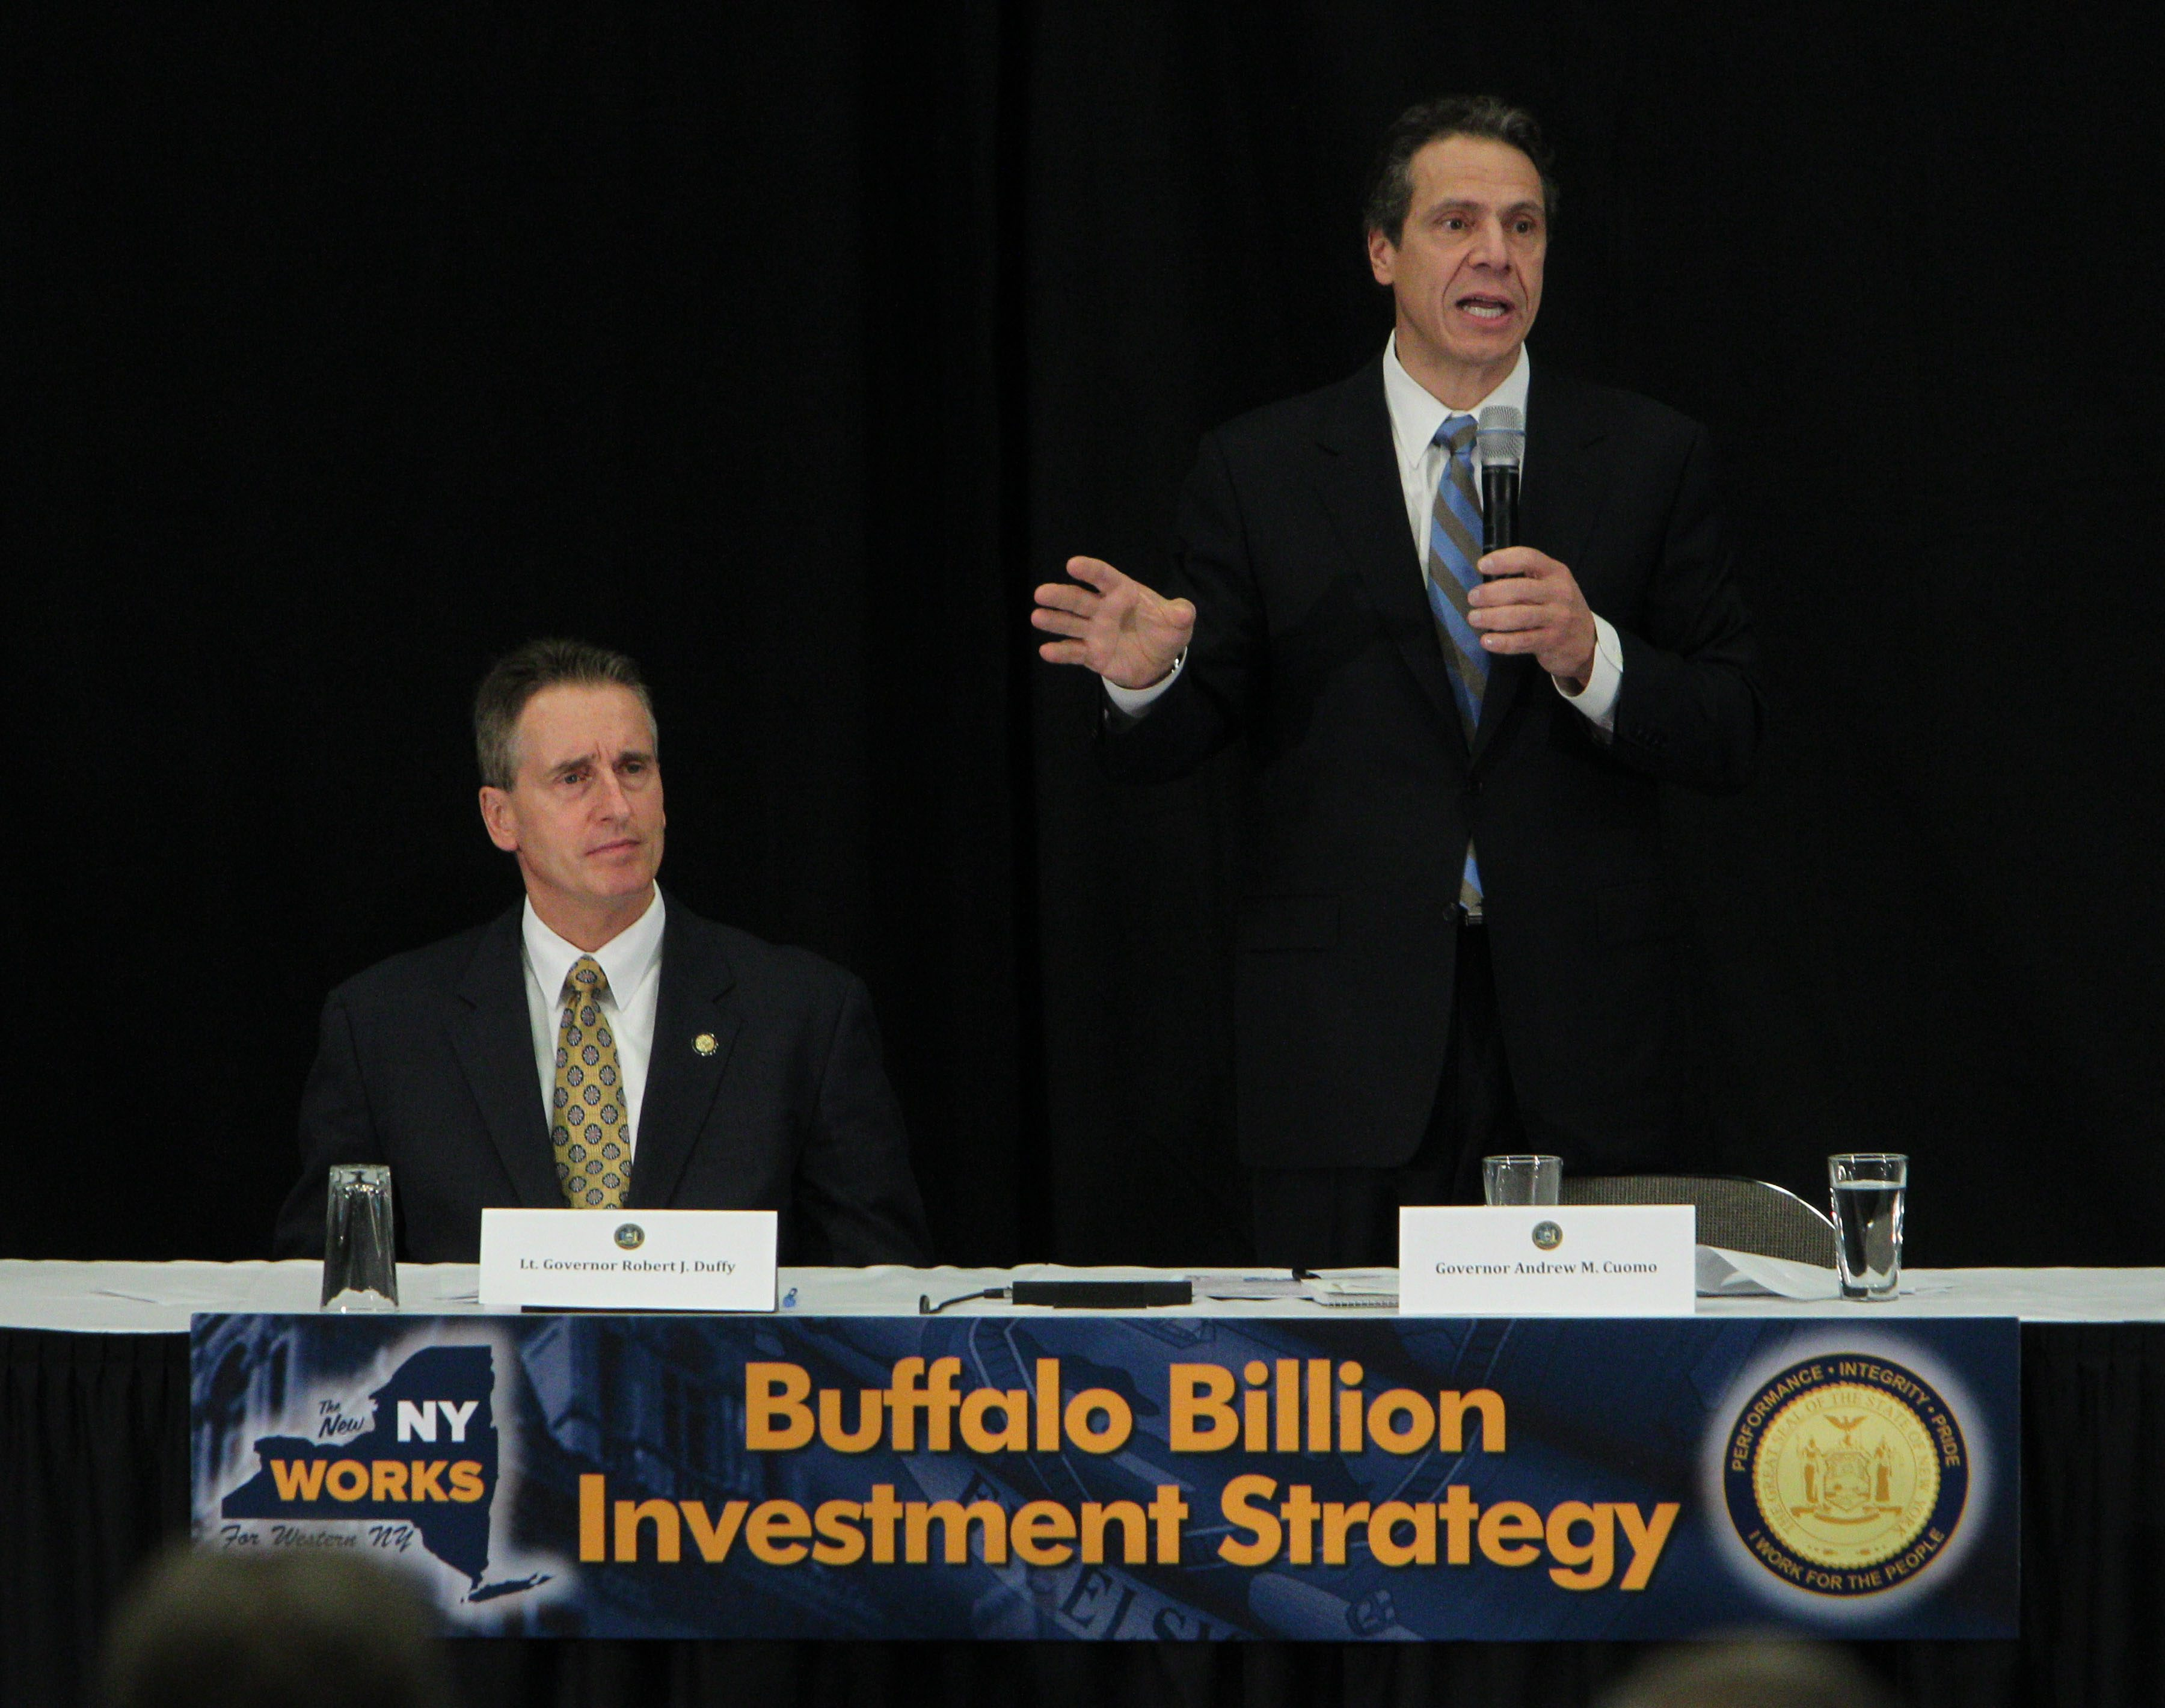 Governor Andrew Cuomo speaks about the Buffalo Billion on Tuesday, Dec. 4, 2012. (Sharon Cantillon/Buffalo News)